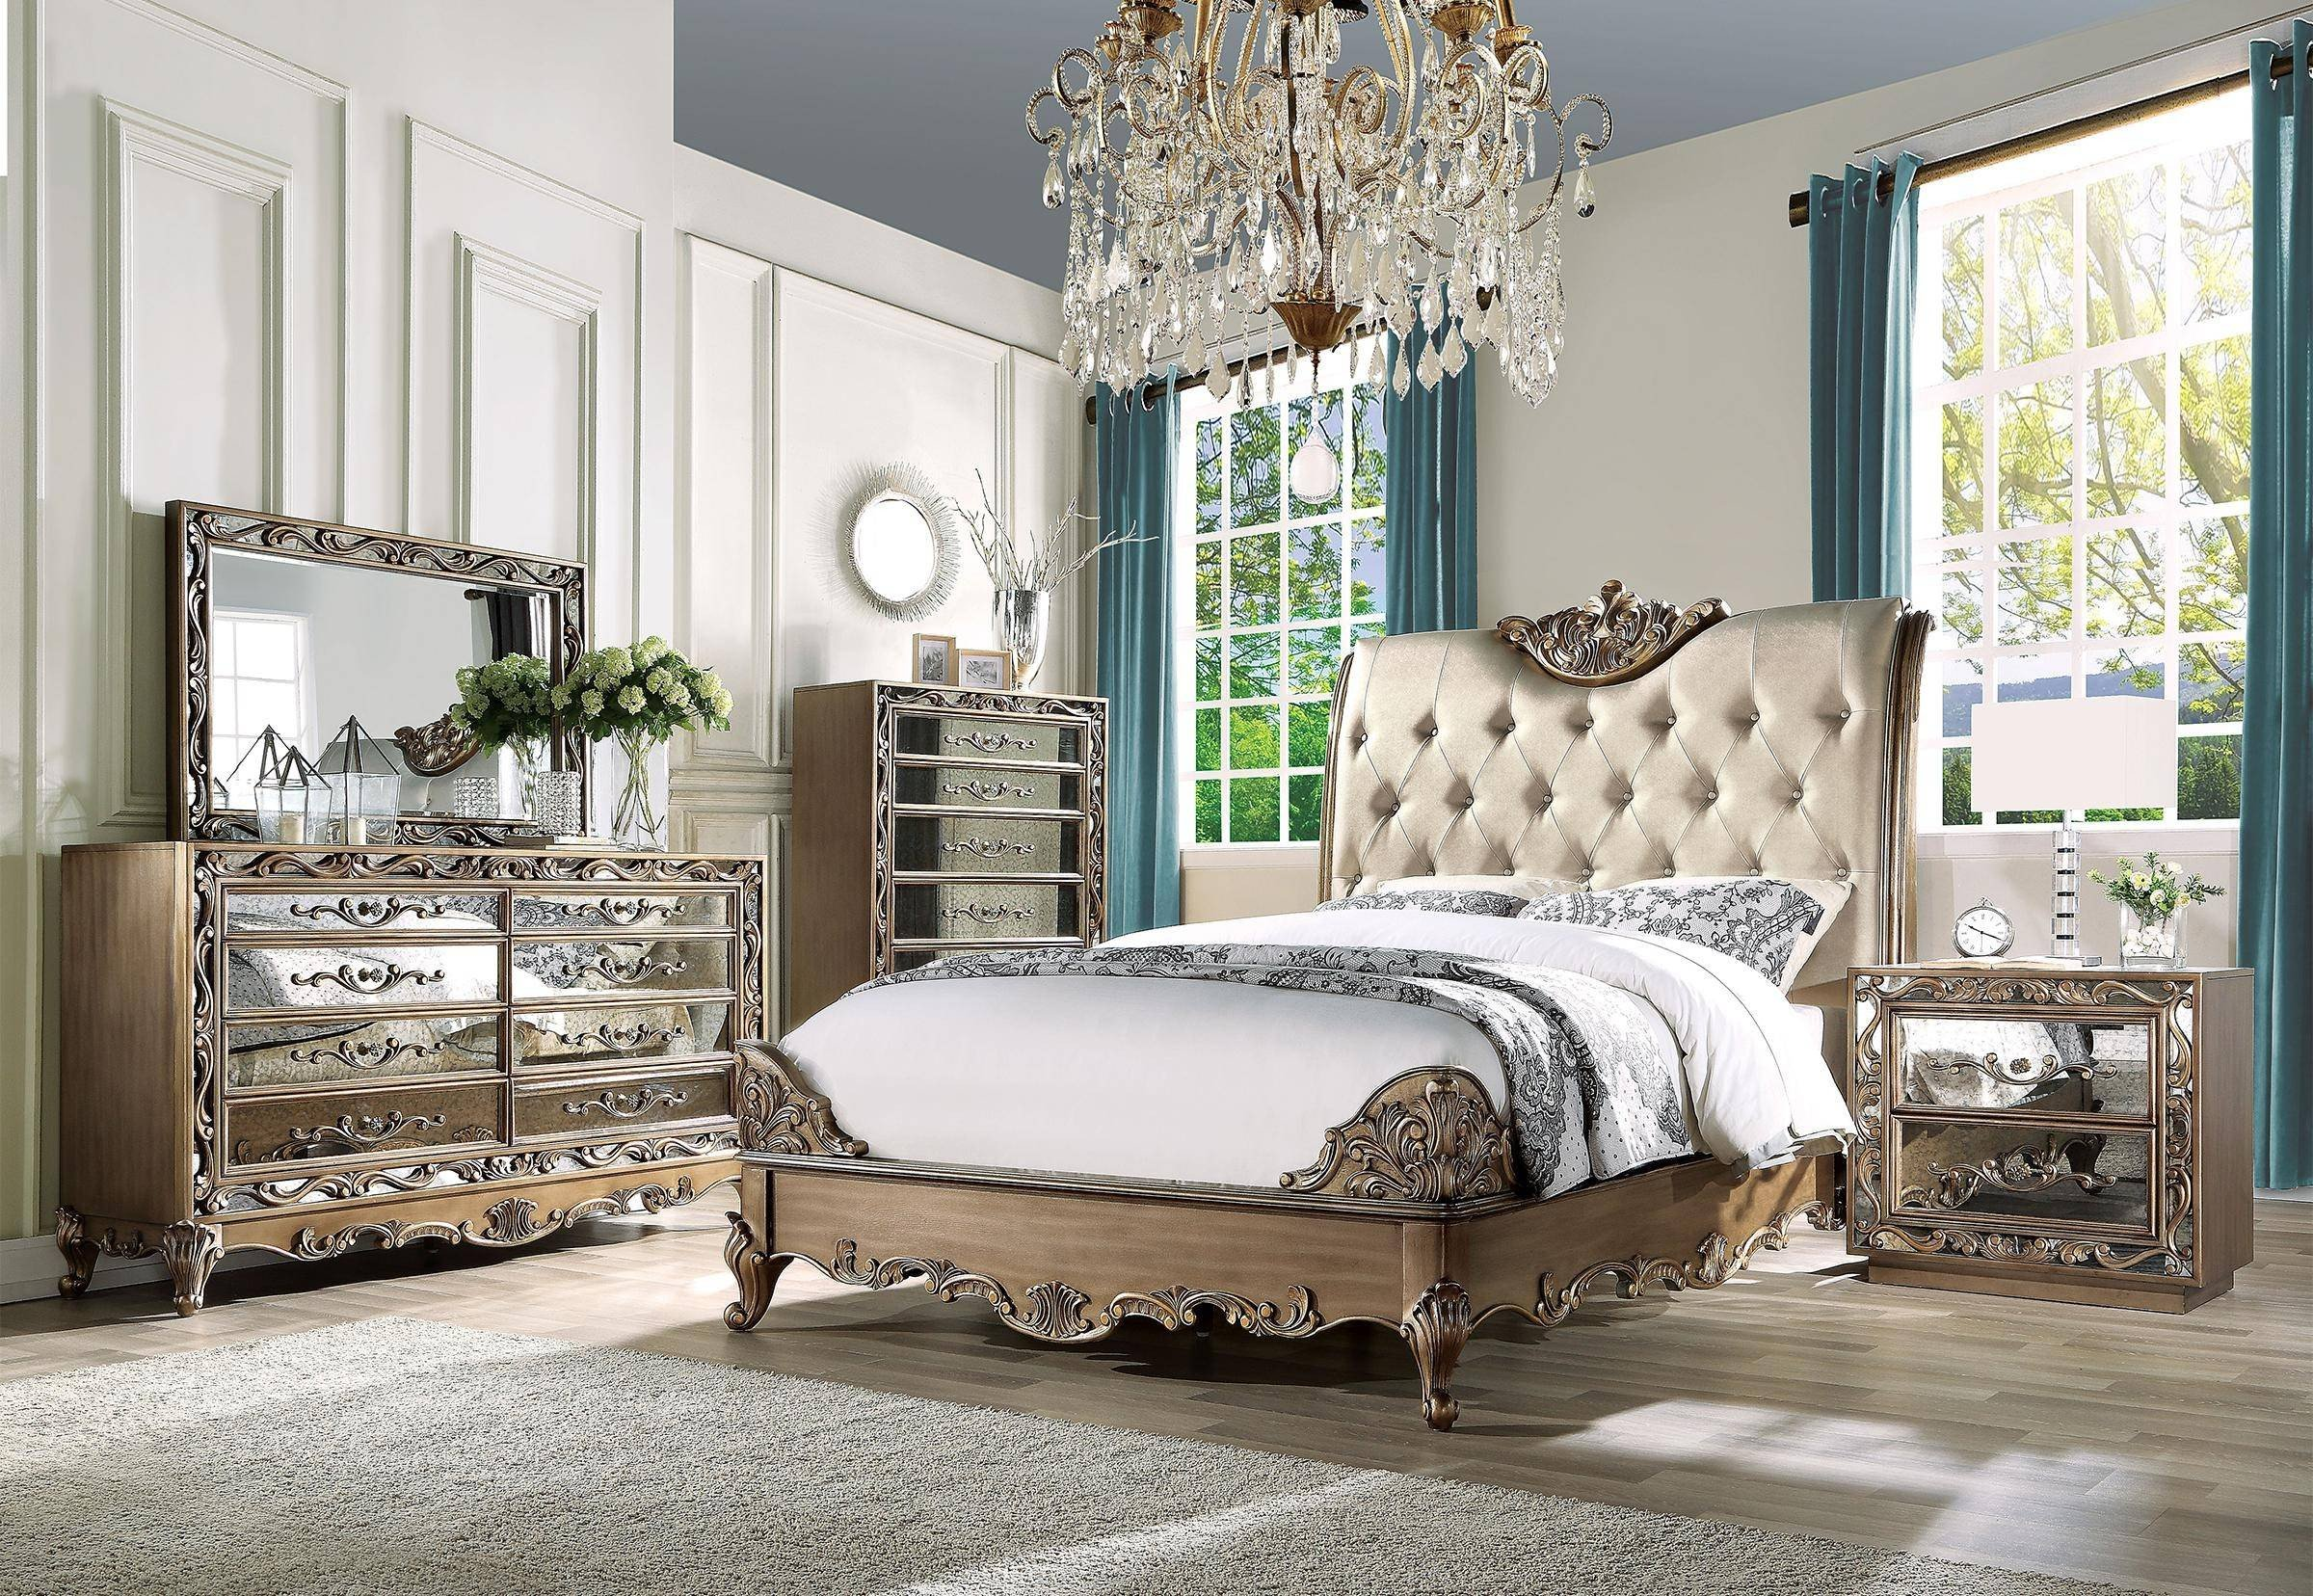 Luxury Master Bedroom Furniture Elegant Luxury King Bedroom Set 3 Antique Gold Champagne F Leather